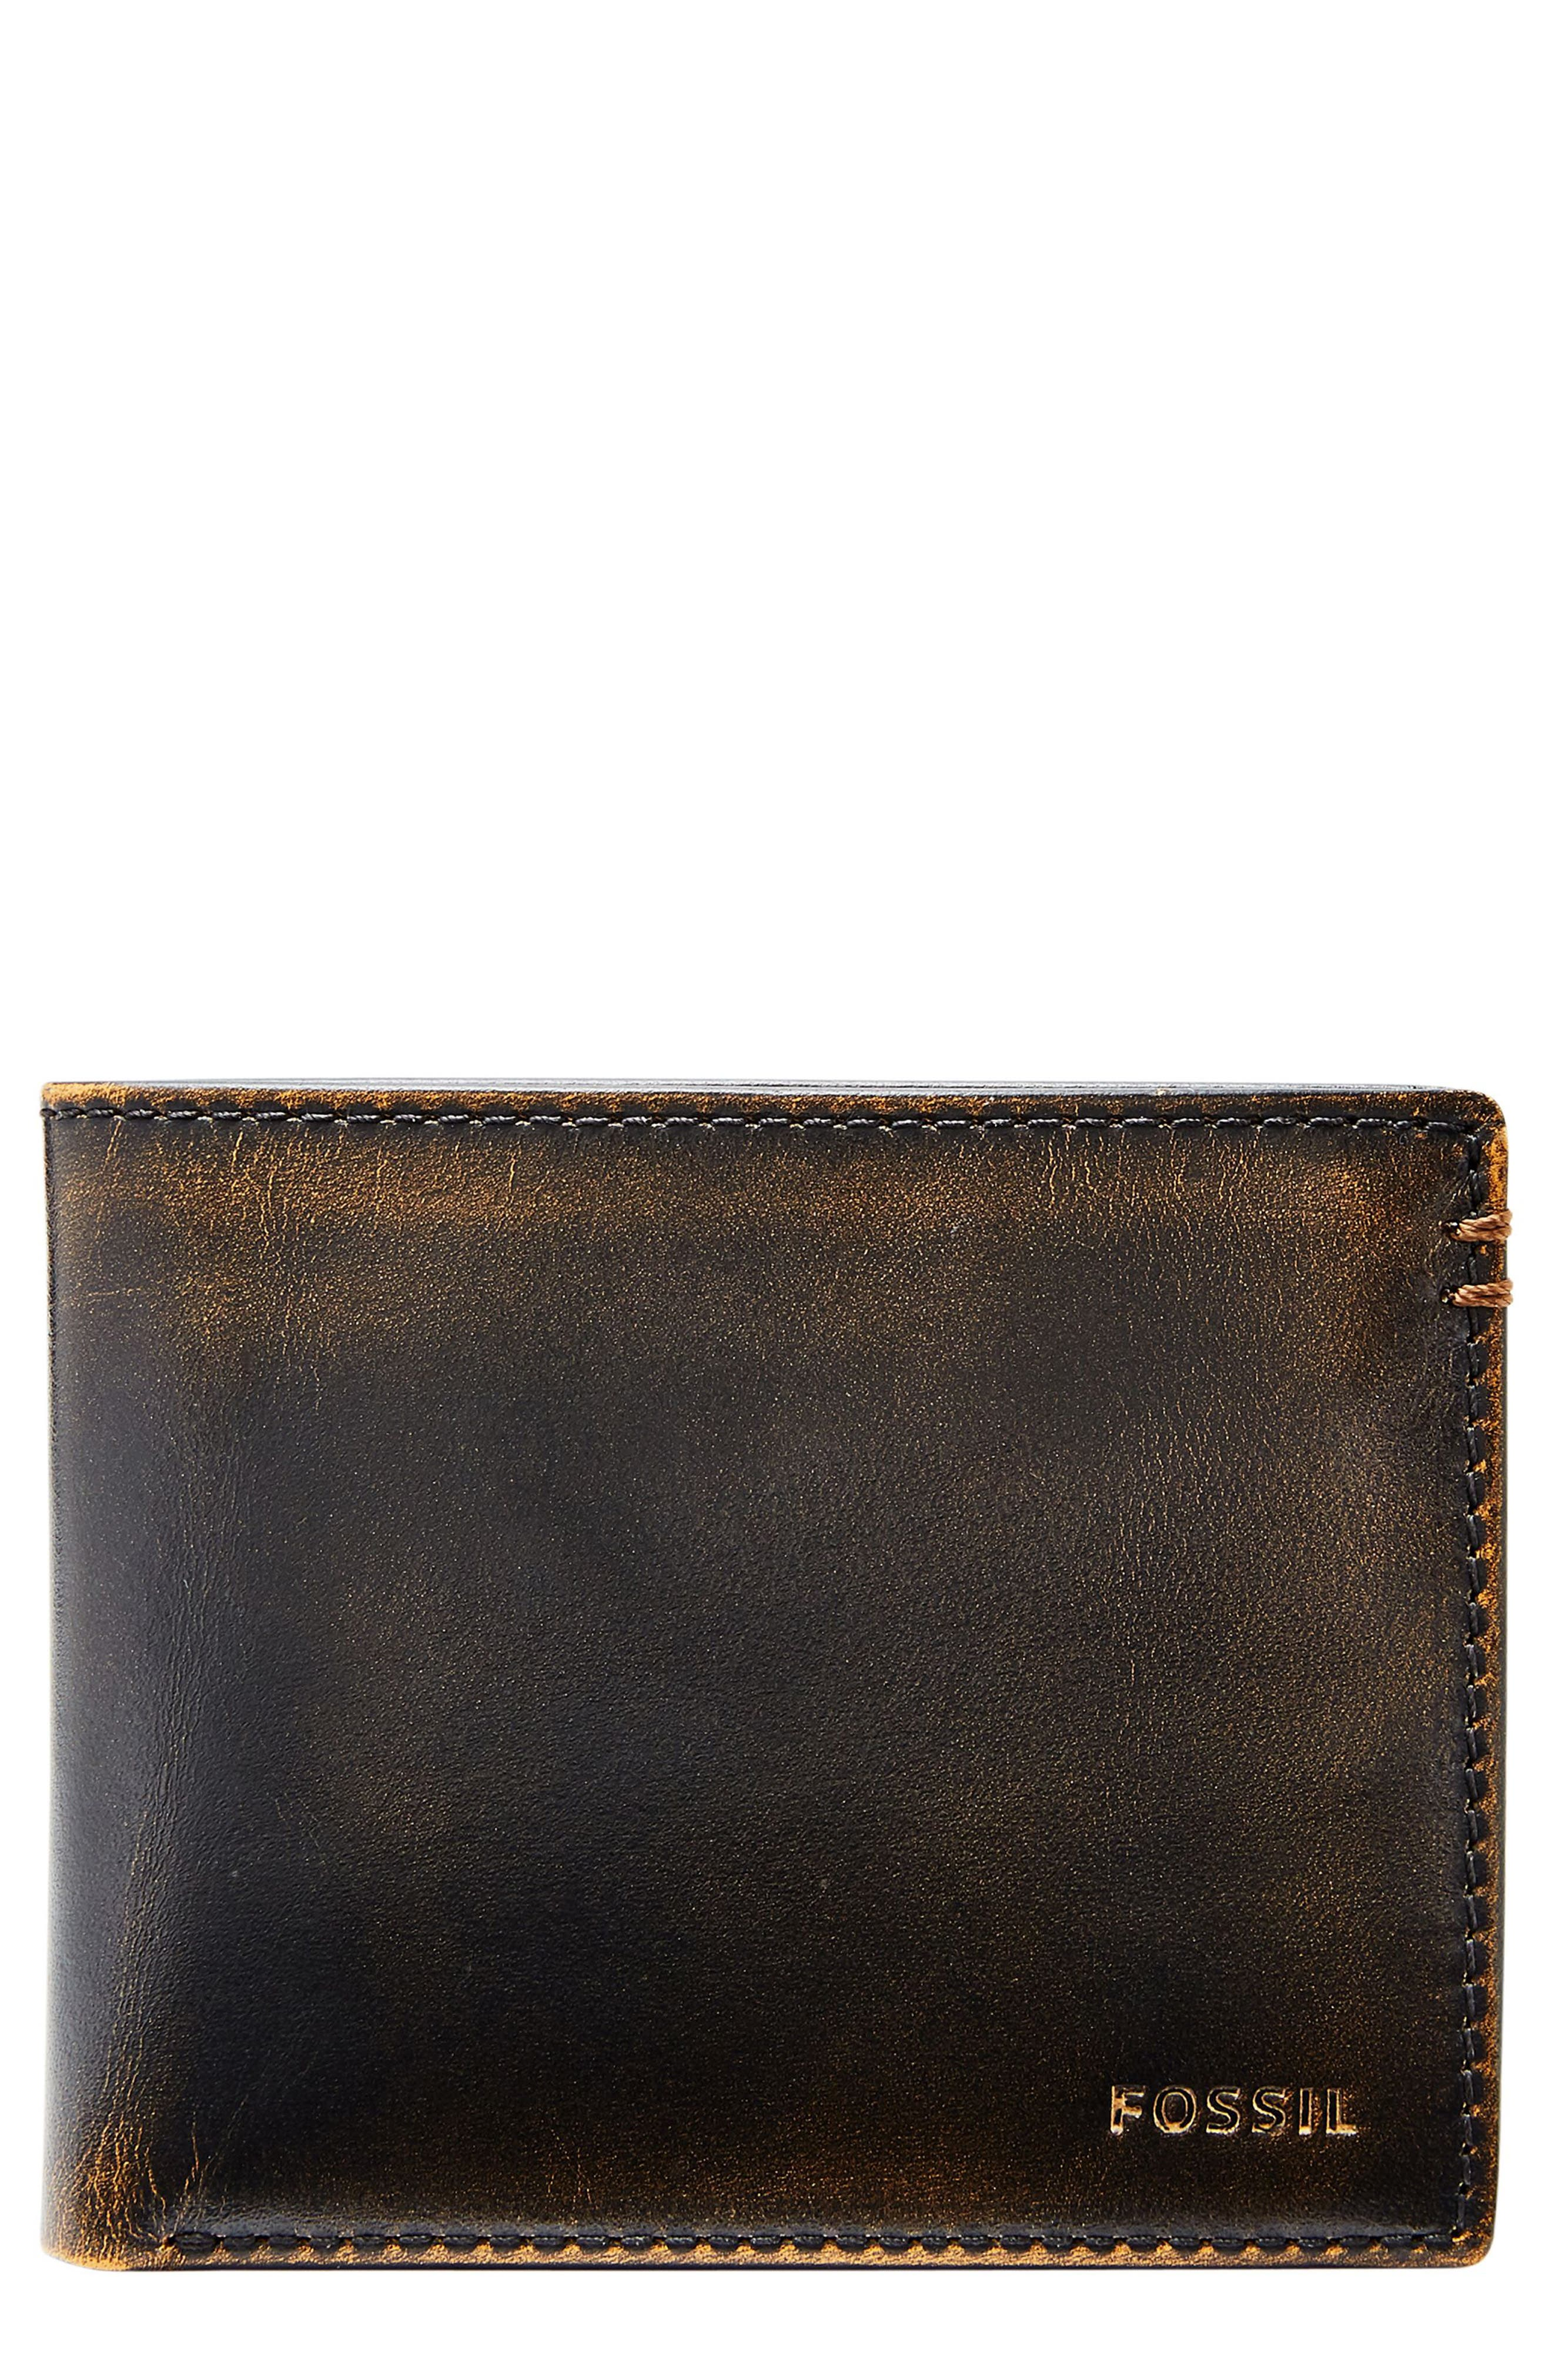 Wade Leather Wallet,                         Main,                         color, BLACK